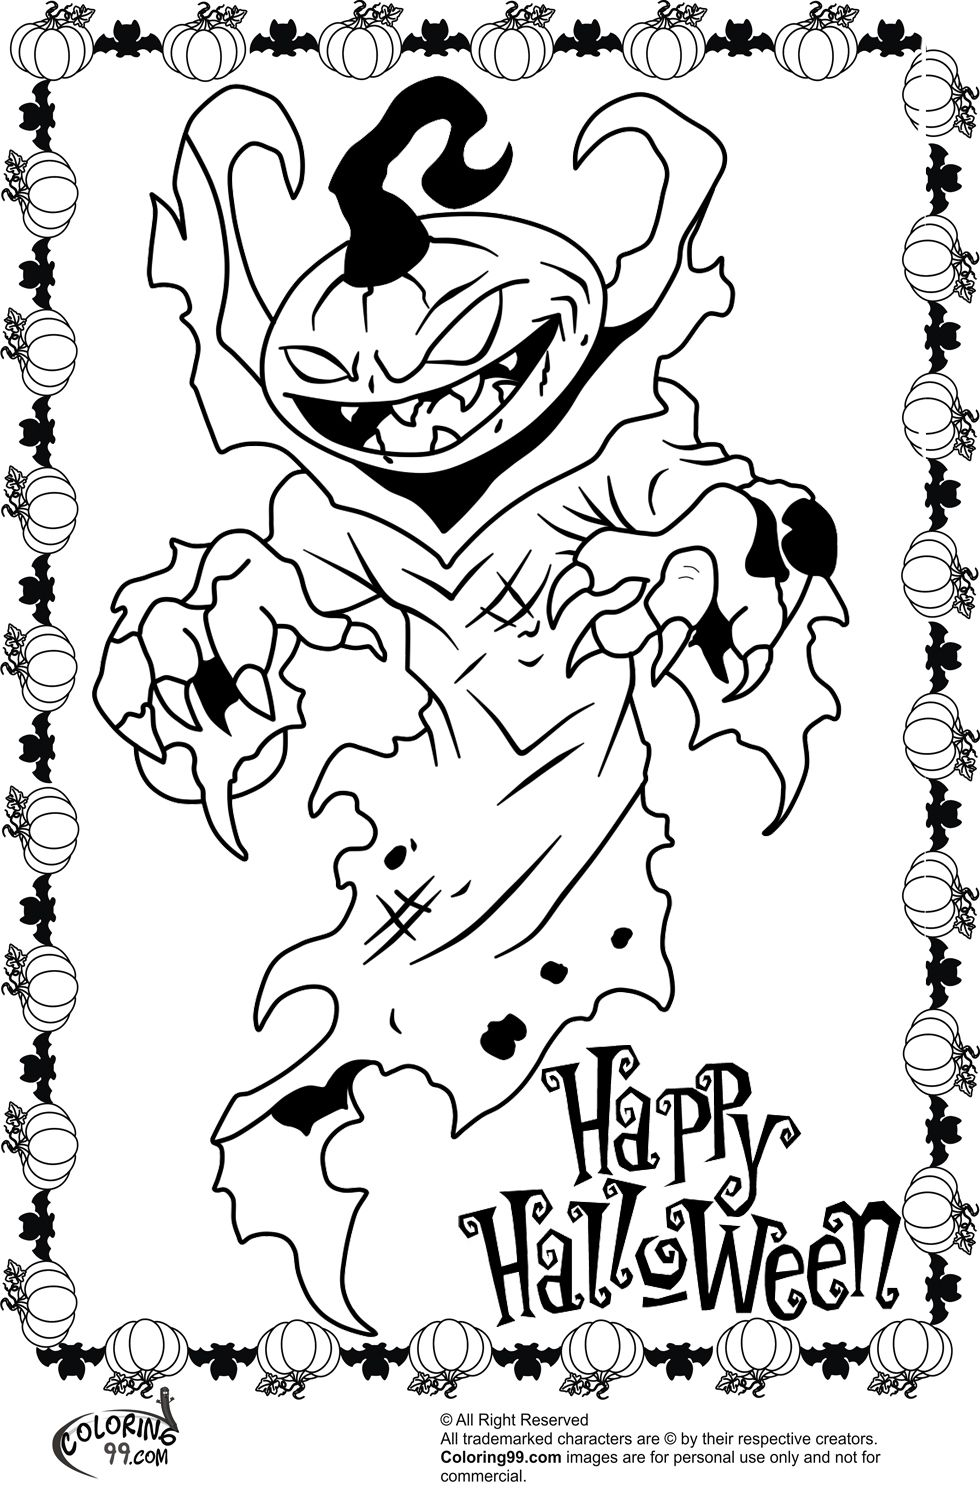 Coloring Halloween Pages Spooky 2020 Halloween Coloring Pages Halloween Coloring Scary Halloween Coloring Pages